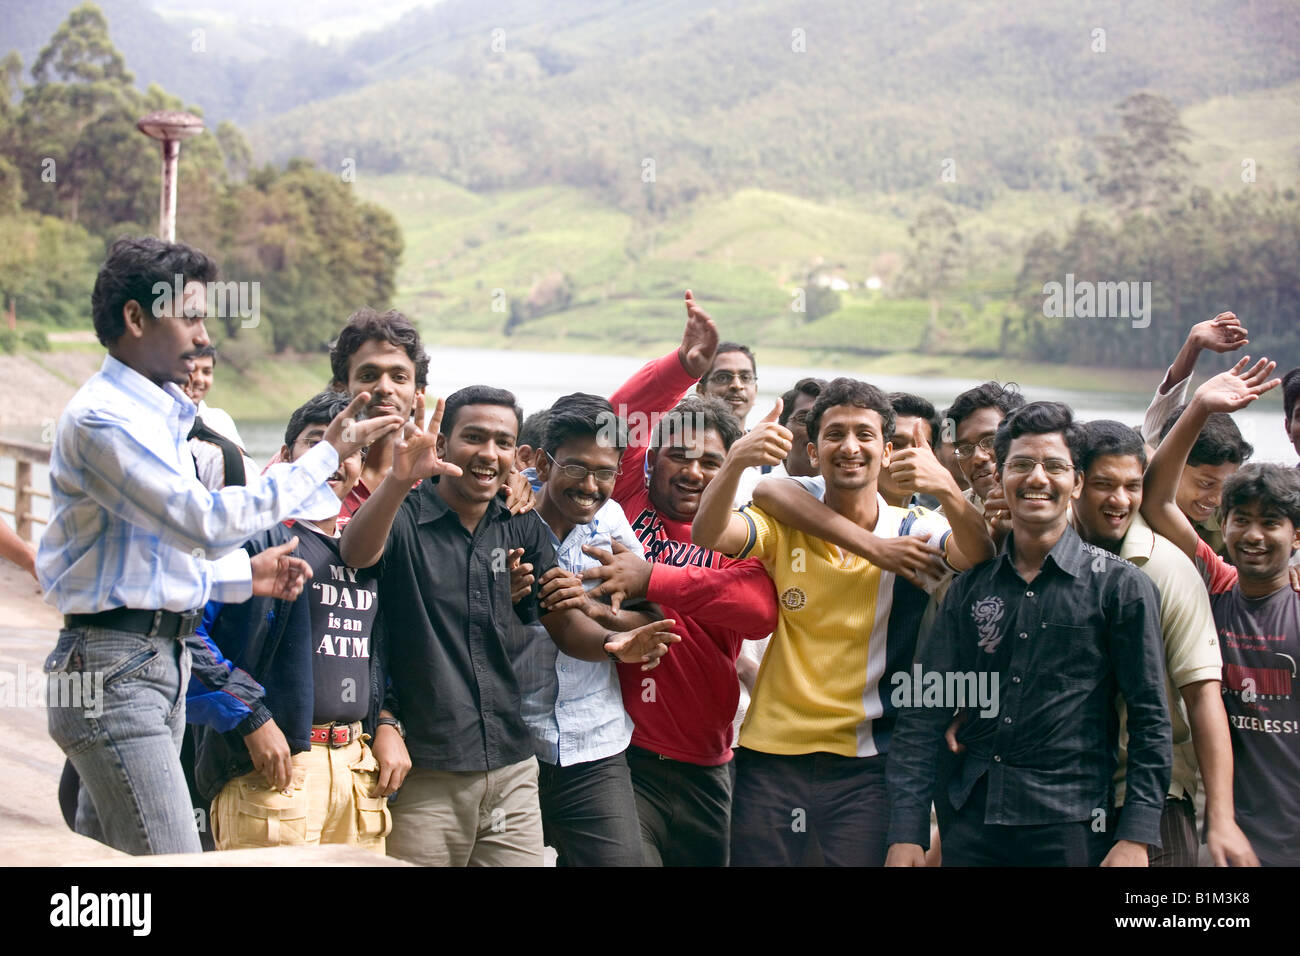 Young Indian men on  excursion pose in high spirits for the camera Mathupetty dam and lake area Idukki Kerala India - Stock Image